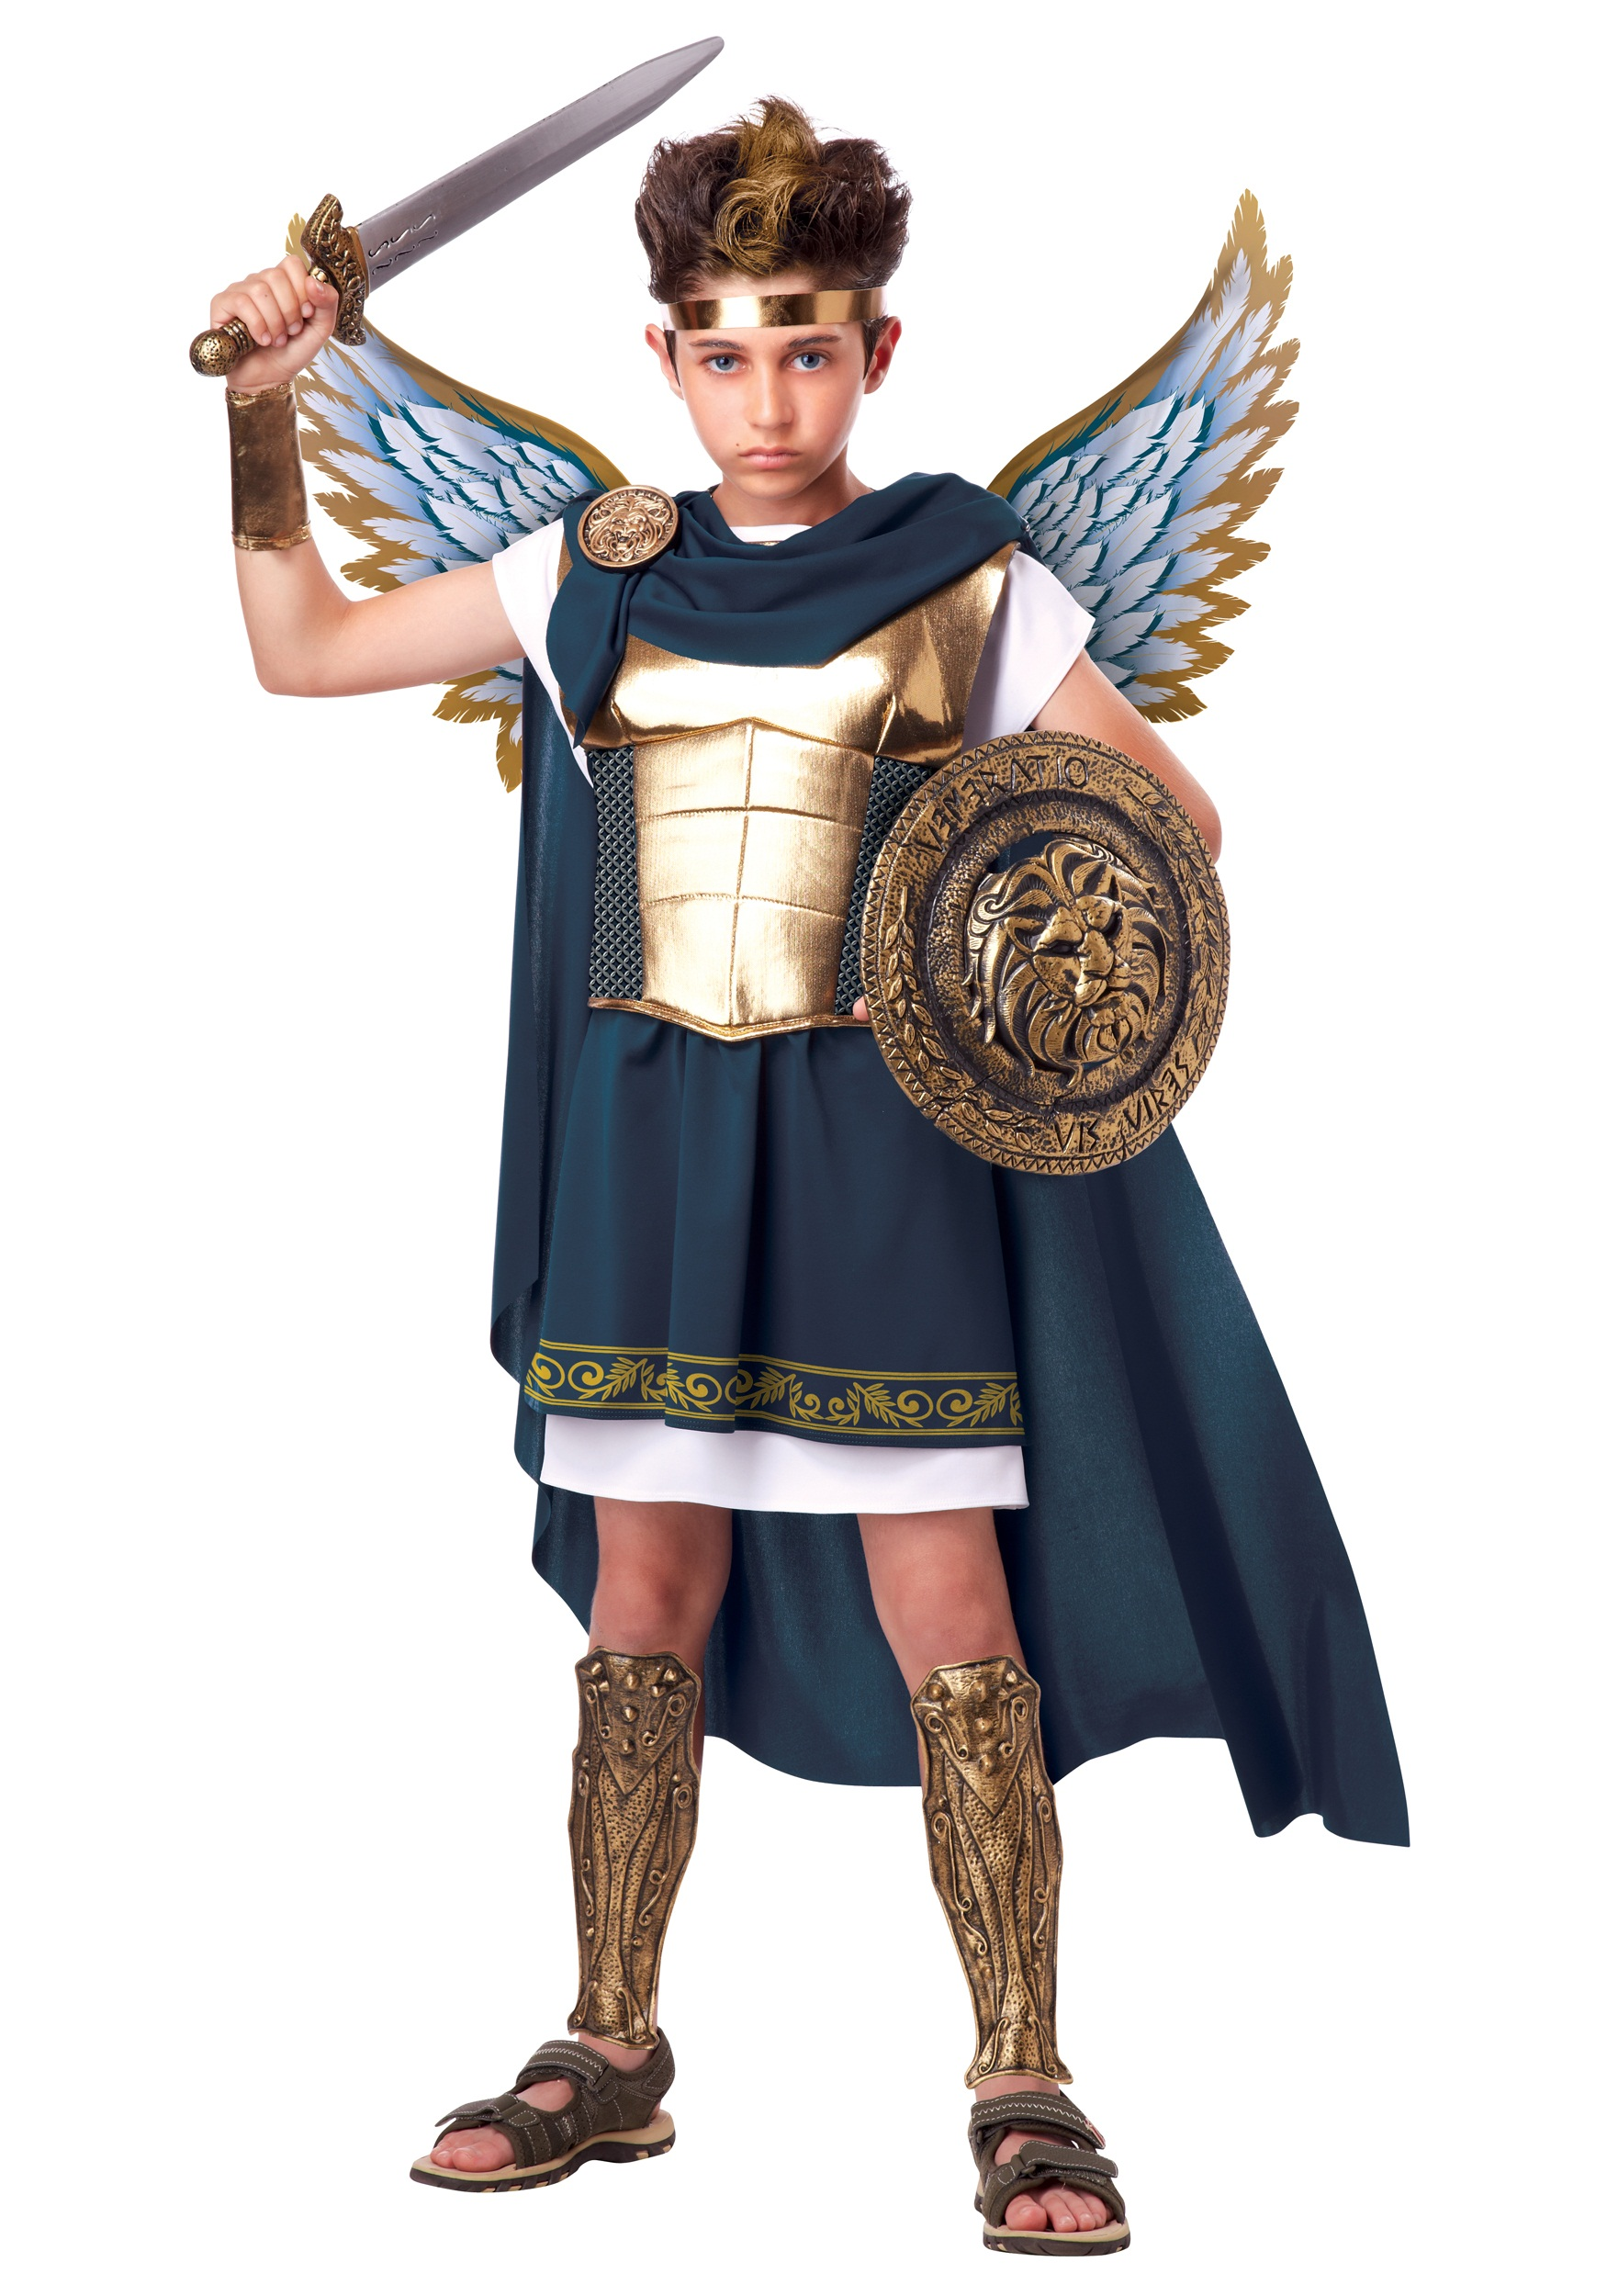 ... spartan costume for kids gladiator costume for toddlers photo al ideas gladiator costume for toddlers photo ...  sc 1 st  Best Kids Costumes & Spartan Costumes For Kids - Best Kids Costumes